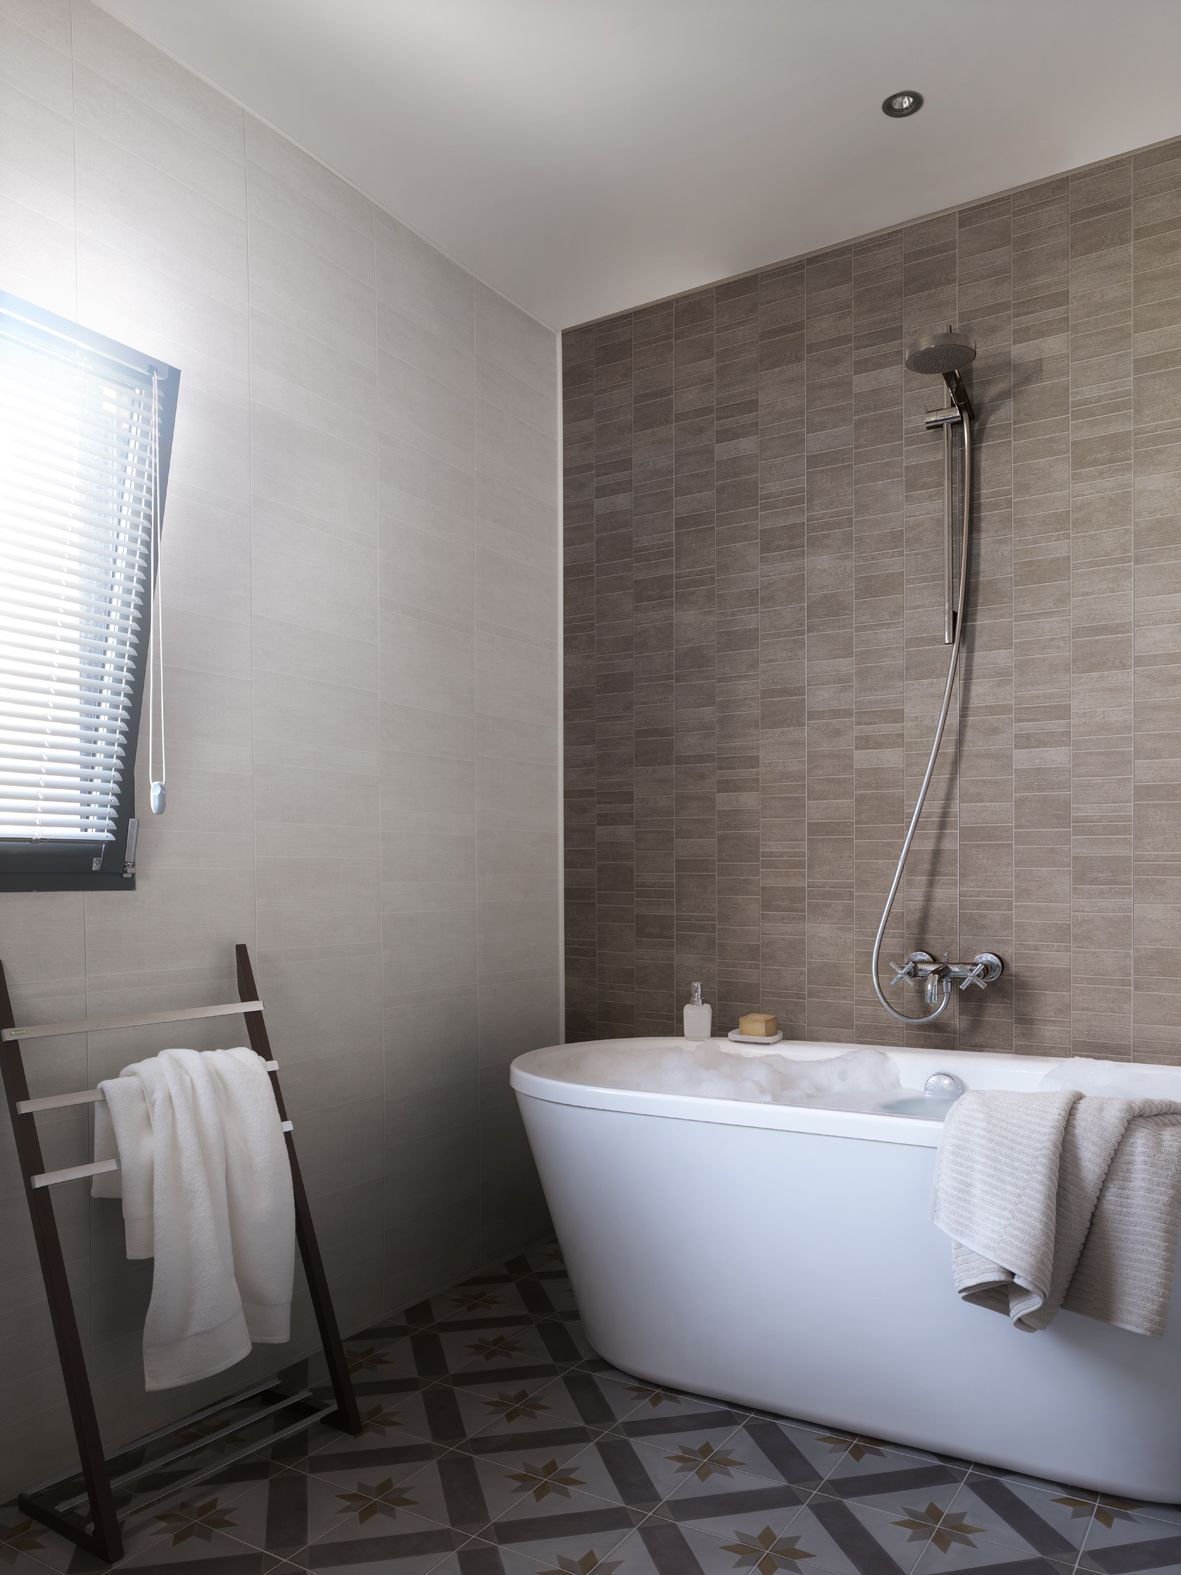 Pvc Wall Panelling An Easy Clean Waterproof And Low Maintenance Solution For Bathrooms A Great Stylish Alternative To Traditi Sharyn S Projects Bathroom Wall Panels Bathroom Wall Coverings Bathroom Cladding